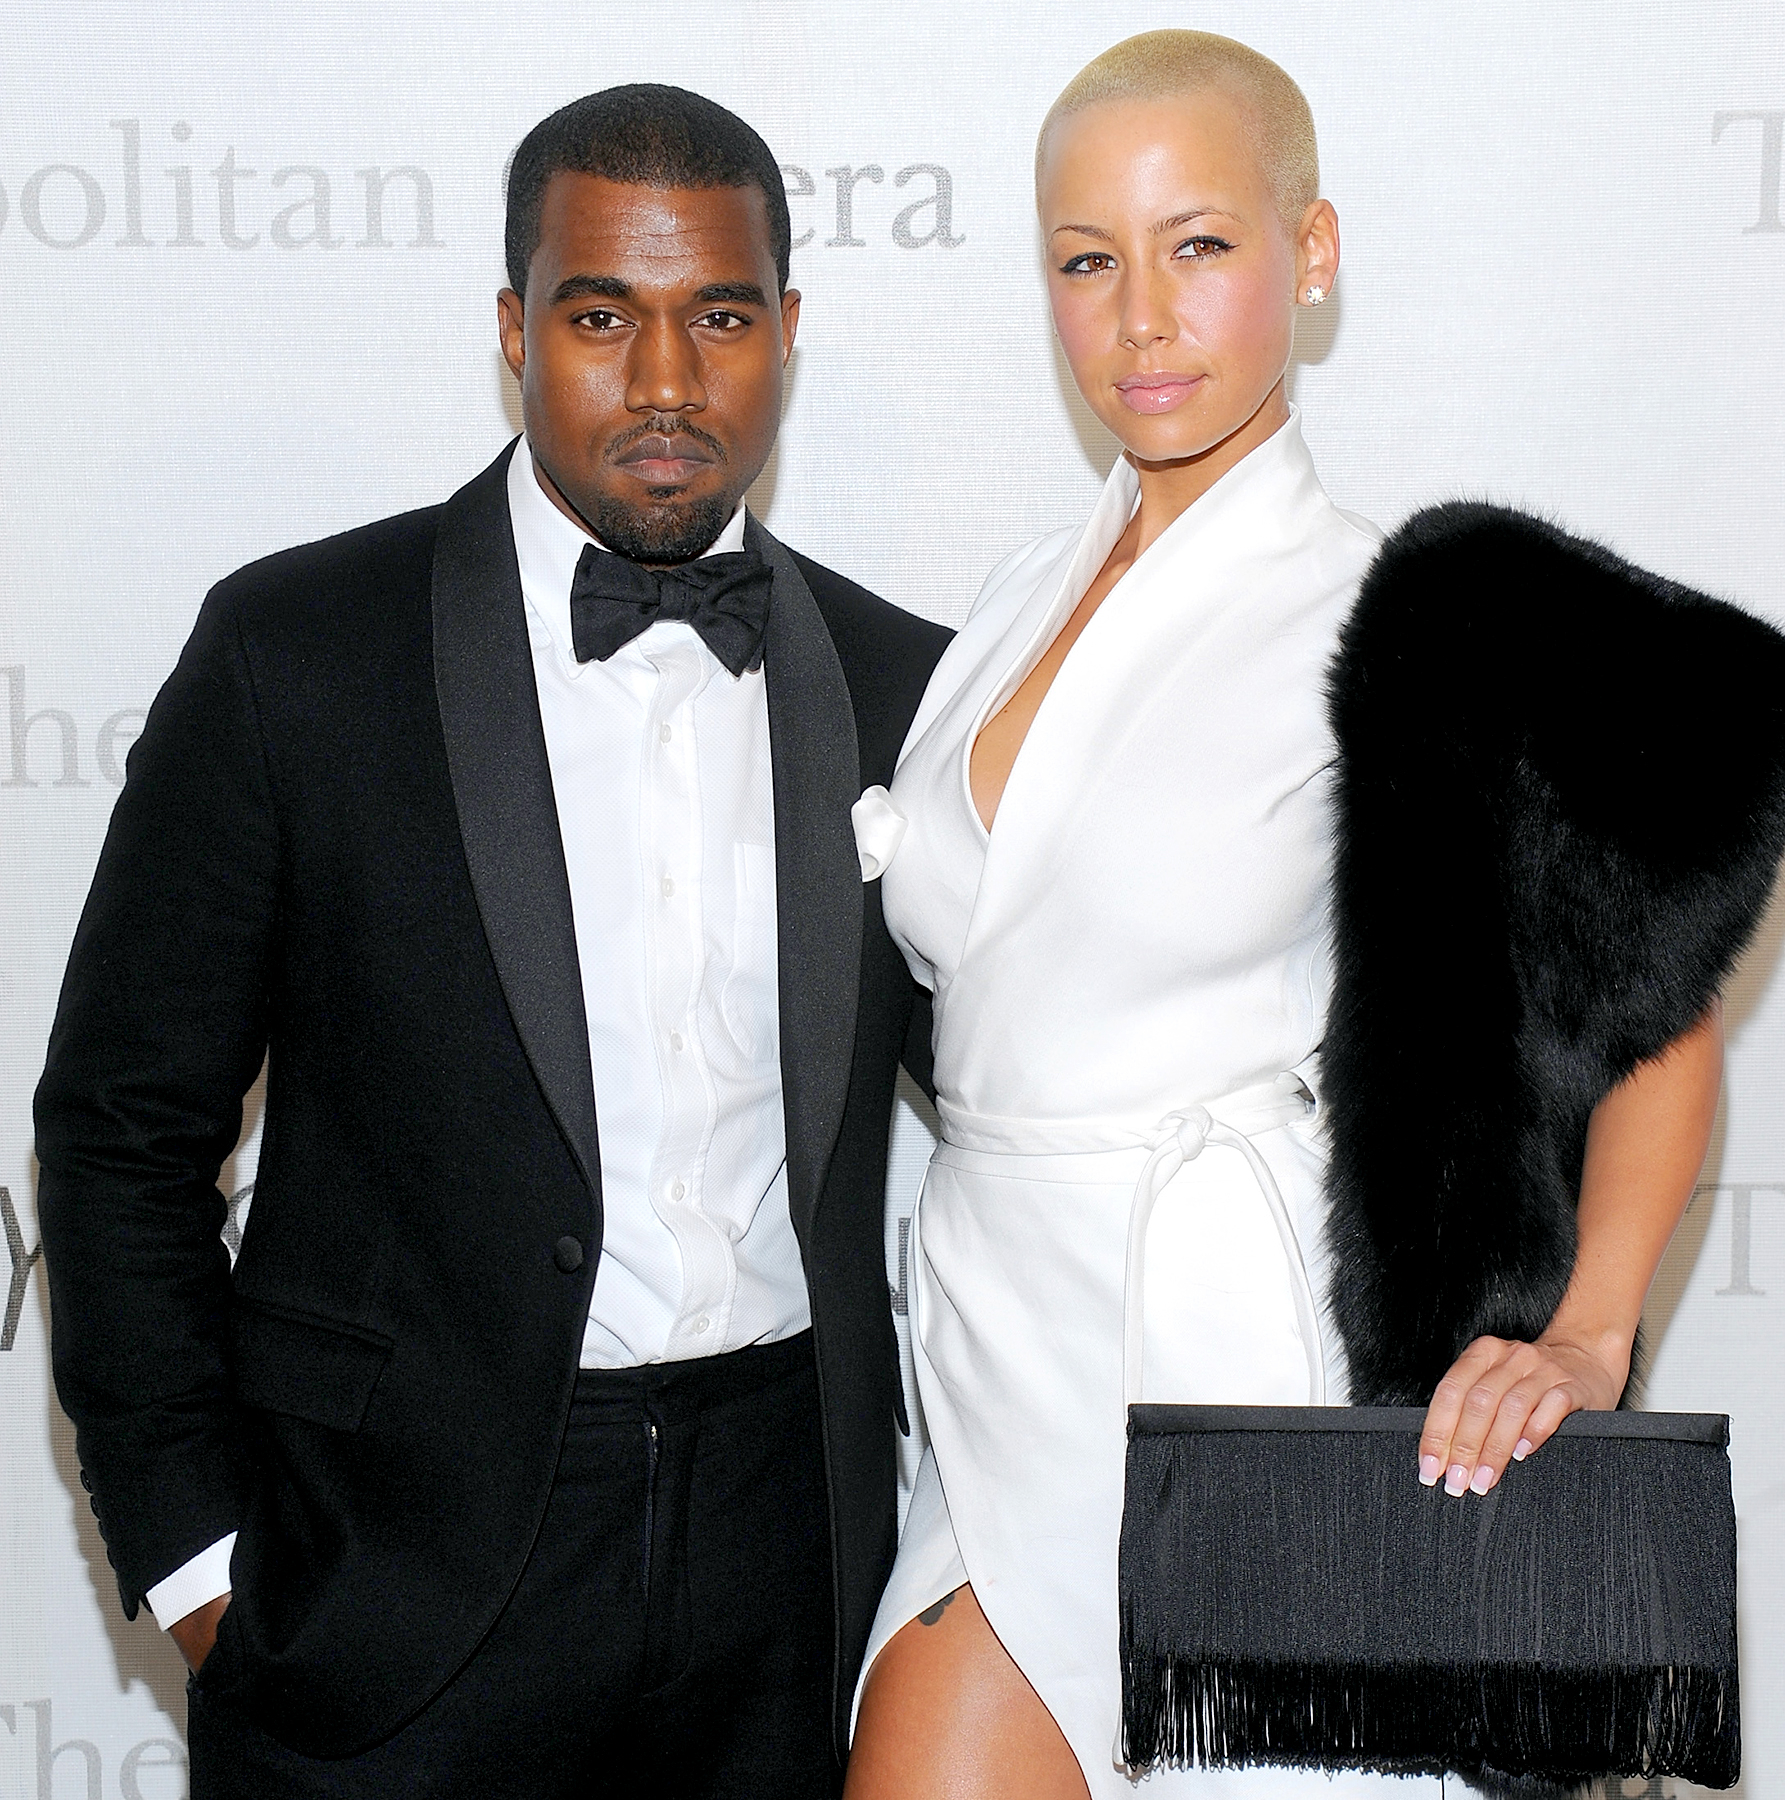 Kanye West and Amber Rose attend the Metropolitan Opera's 125th-anniversary gala at Metropolitan Opera House at Lincoln Center on March 15, 2009, in New York City.